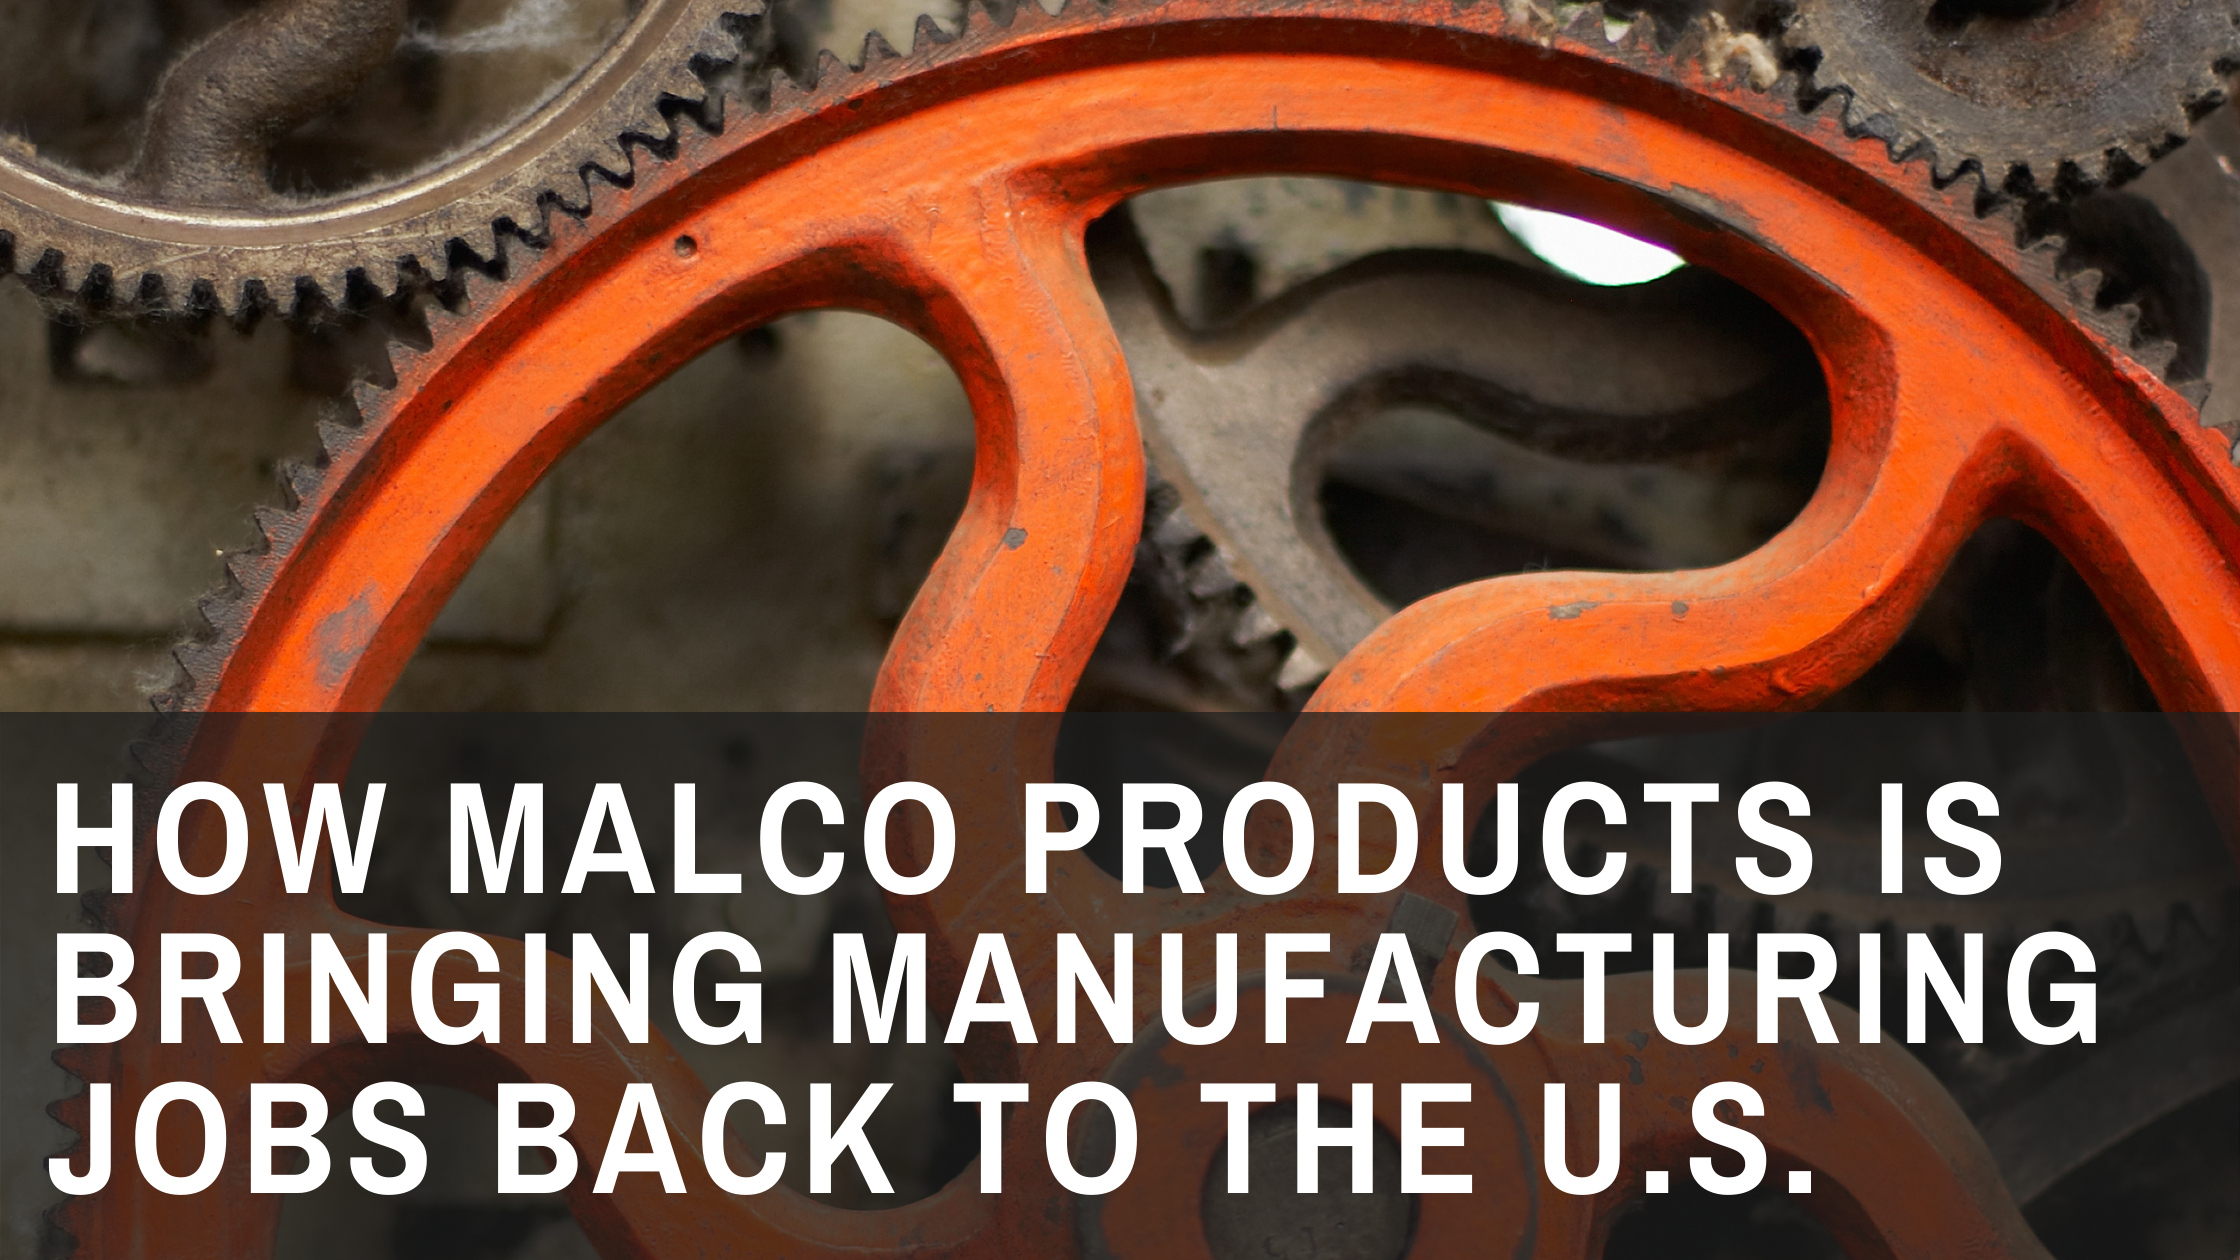 How One Company Is Bringing Manufacturing Jobs Back To The U.S.